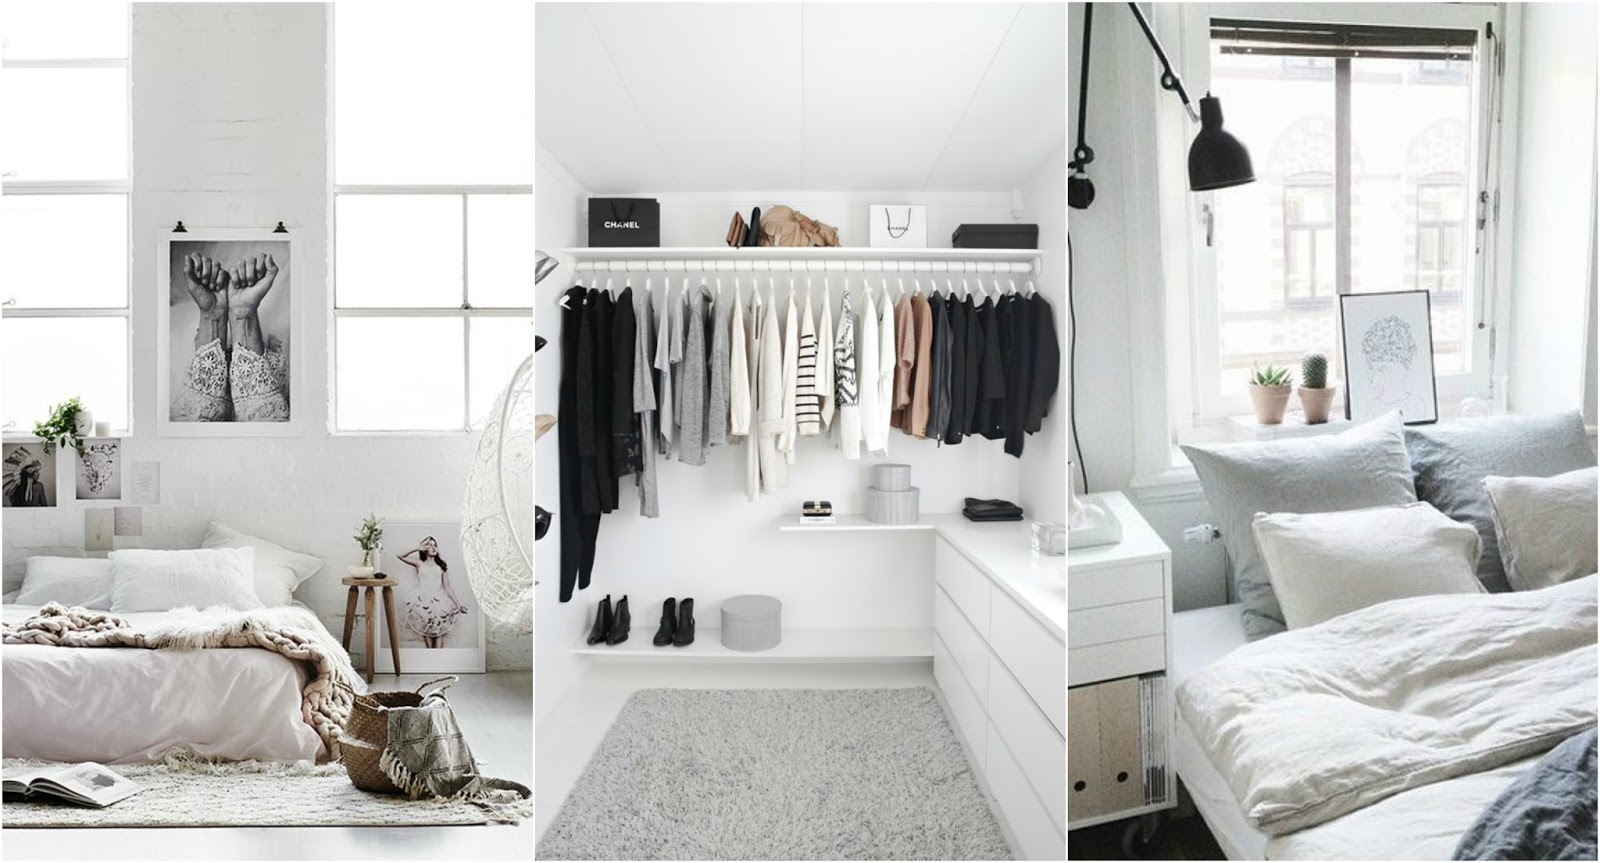 My Minimalist Bedroom Goals